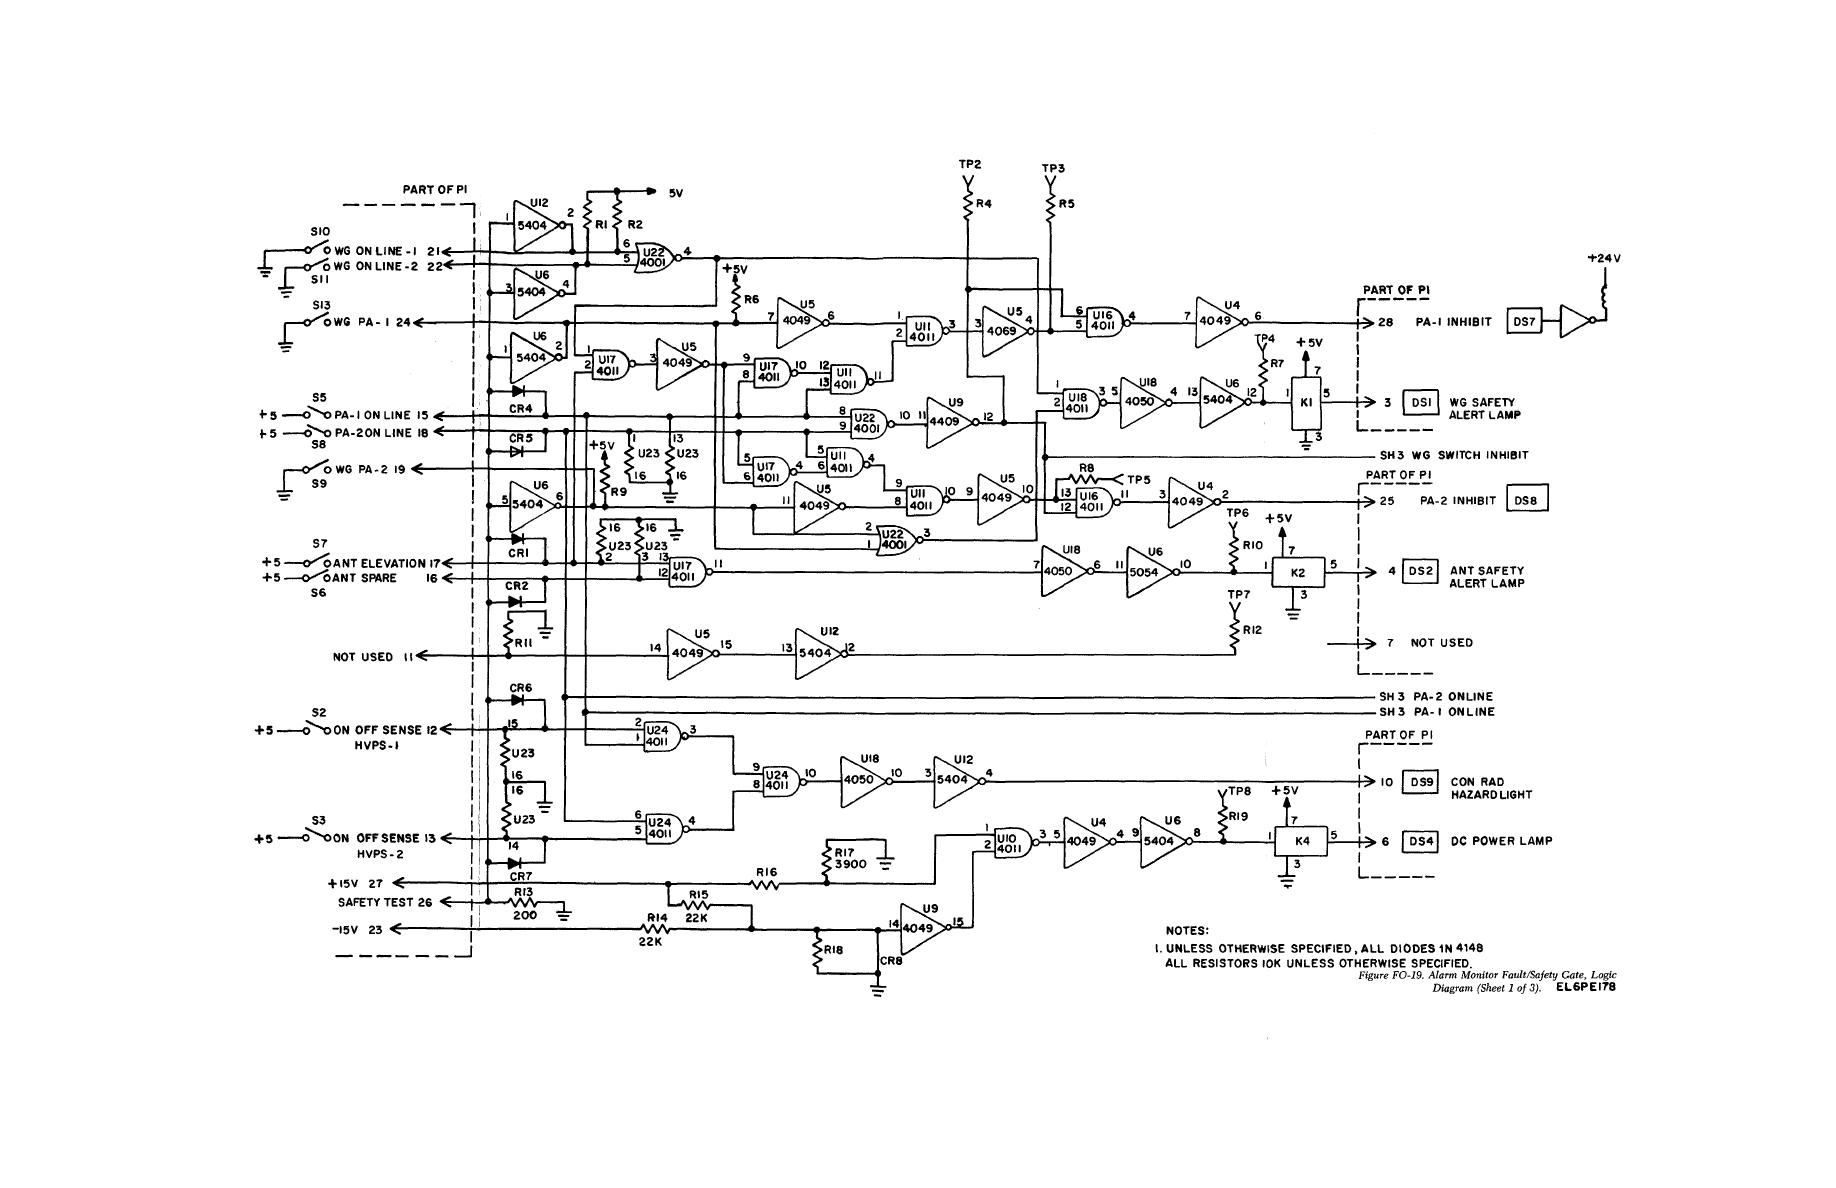 Logic Diagram Of And Gate Question About Wiring Template 01010010011001010110000101100100001000000111010001 1010000110100101110011 Circuit Gates